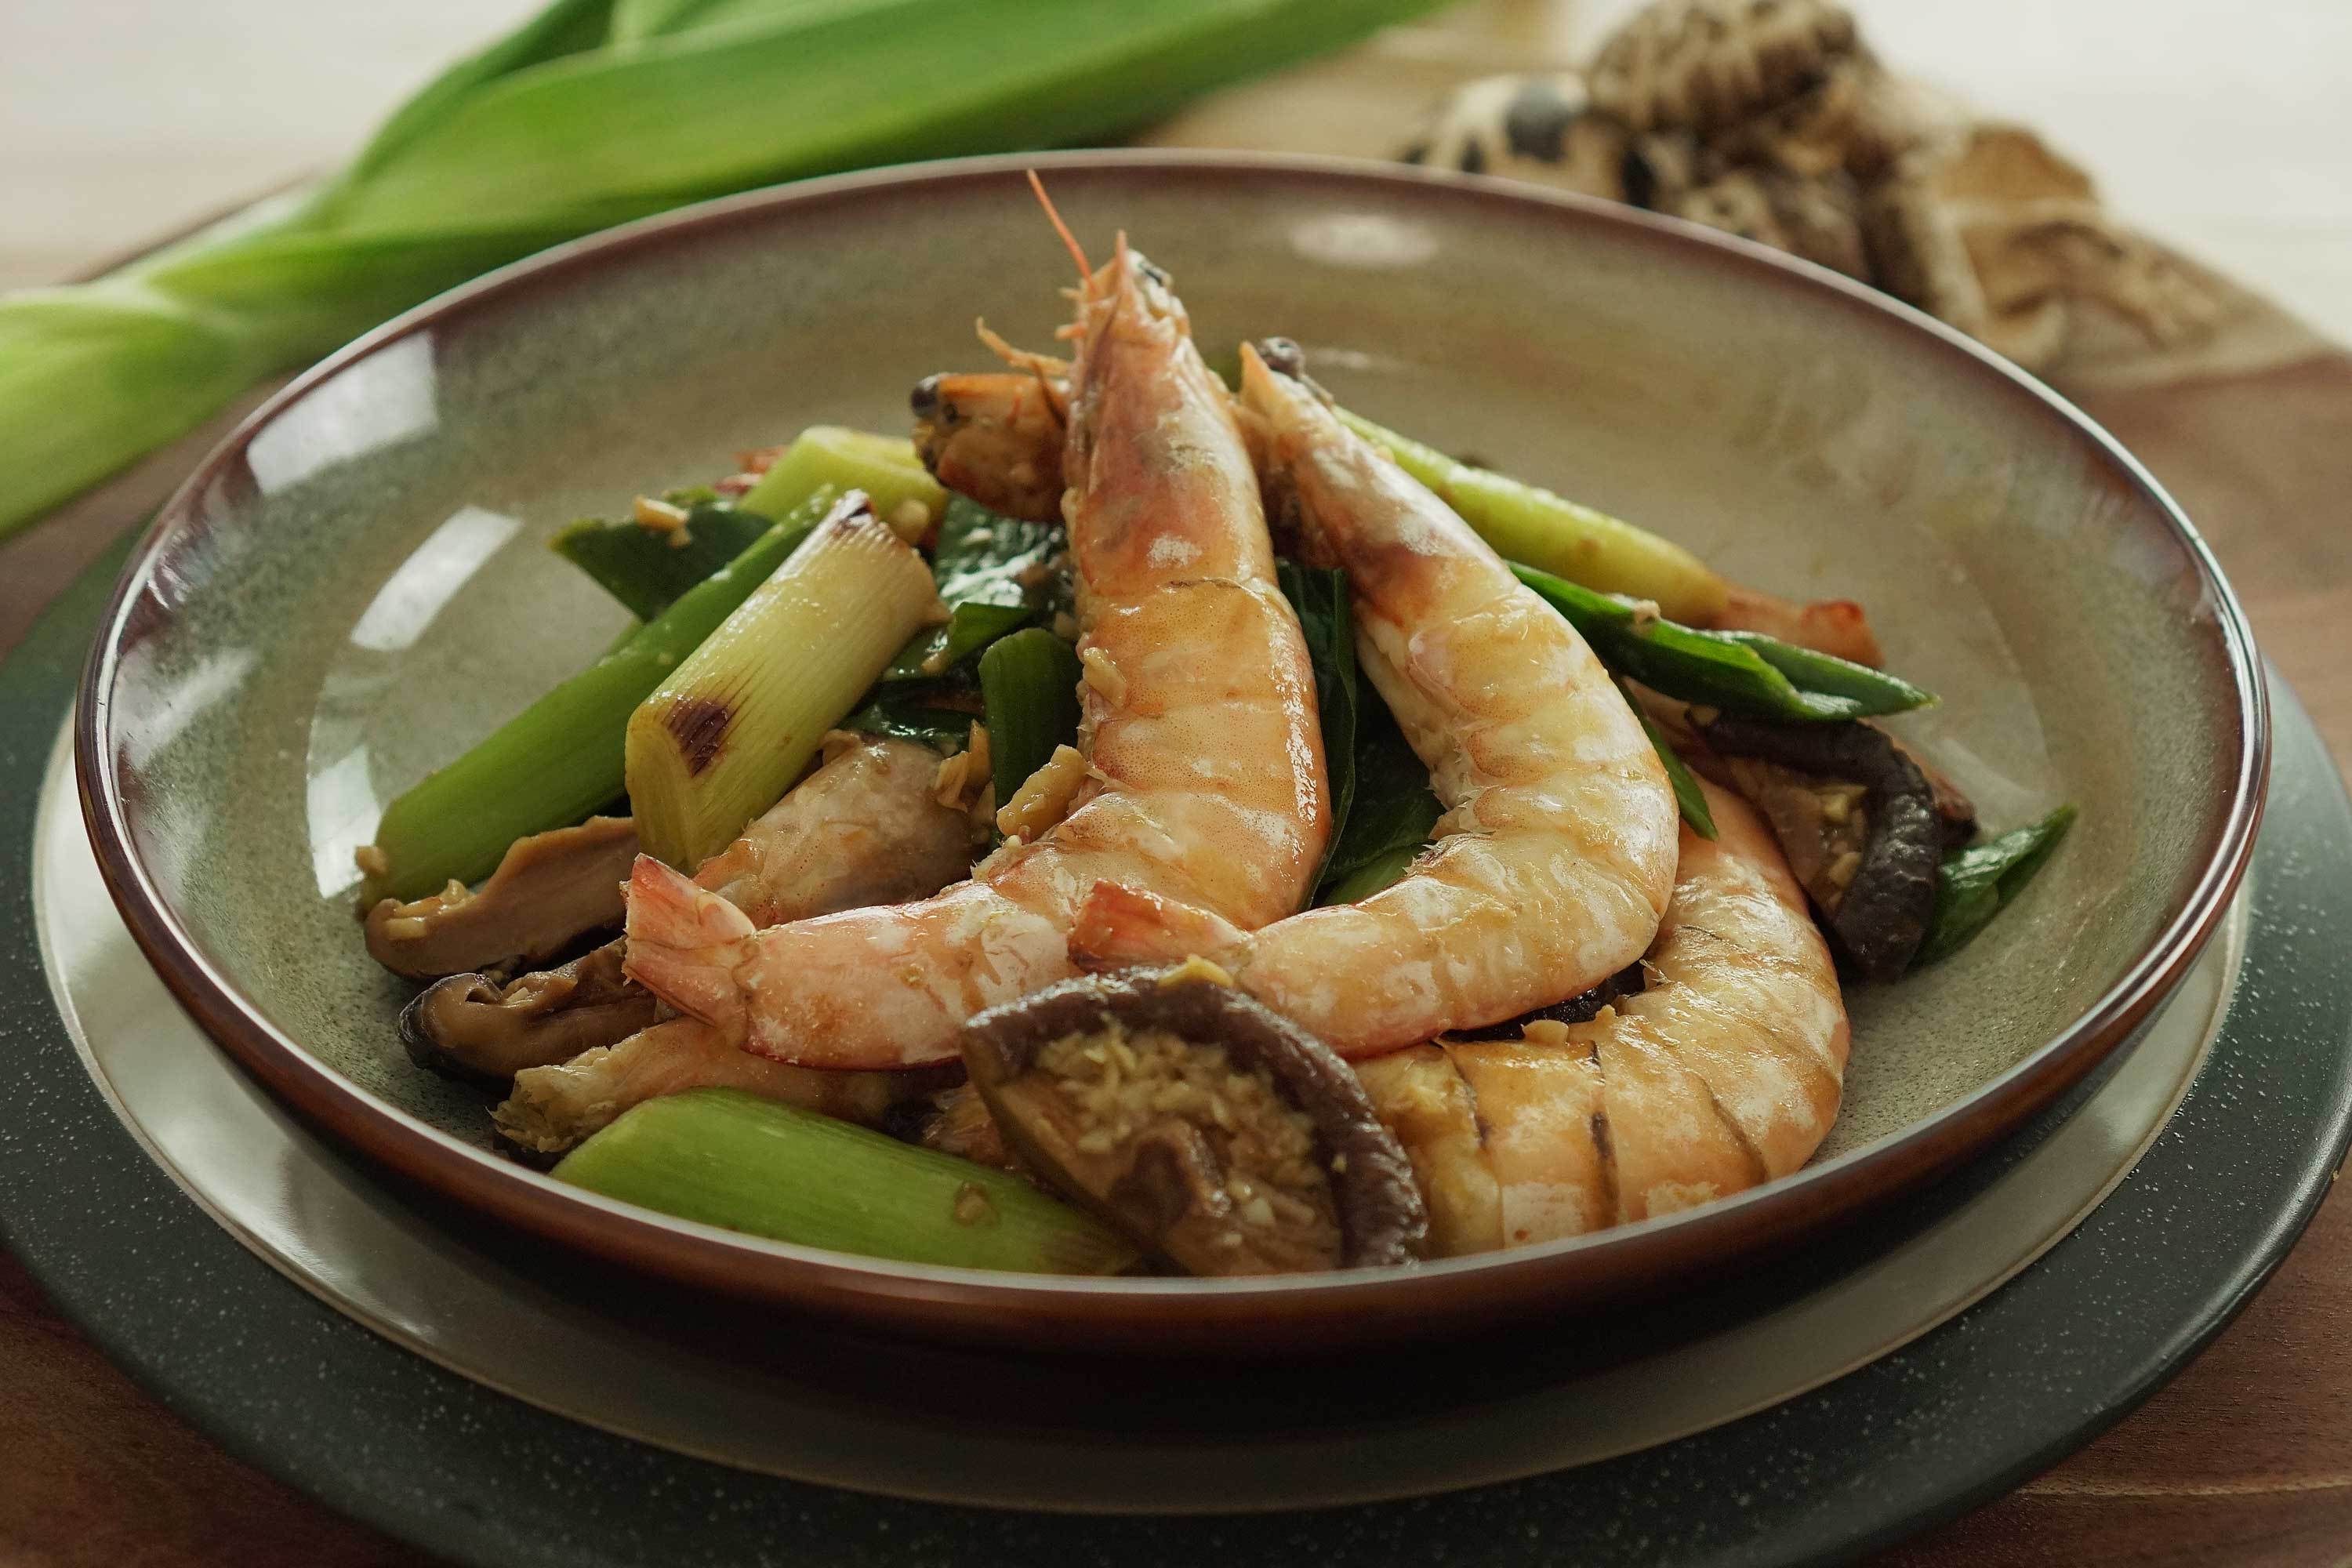 Stir-fried Leeks with Prawns - 韭菜炒虾